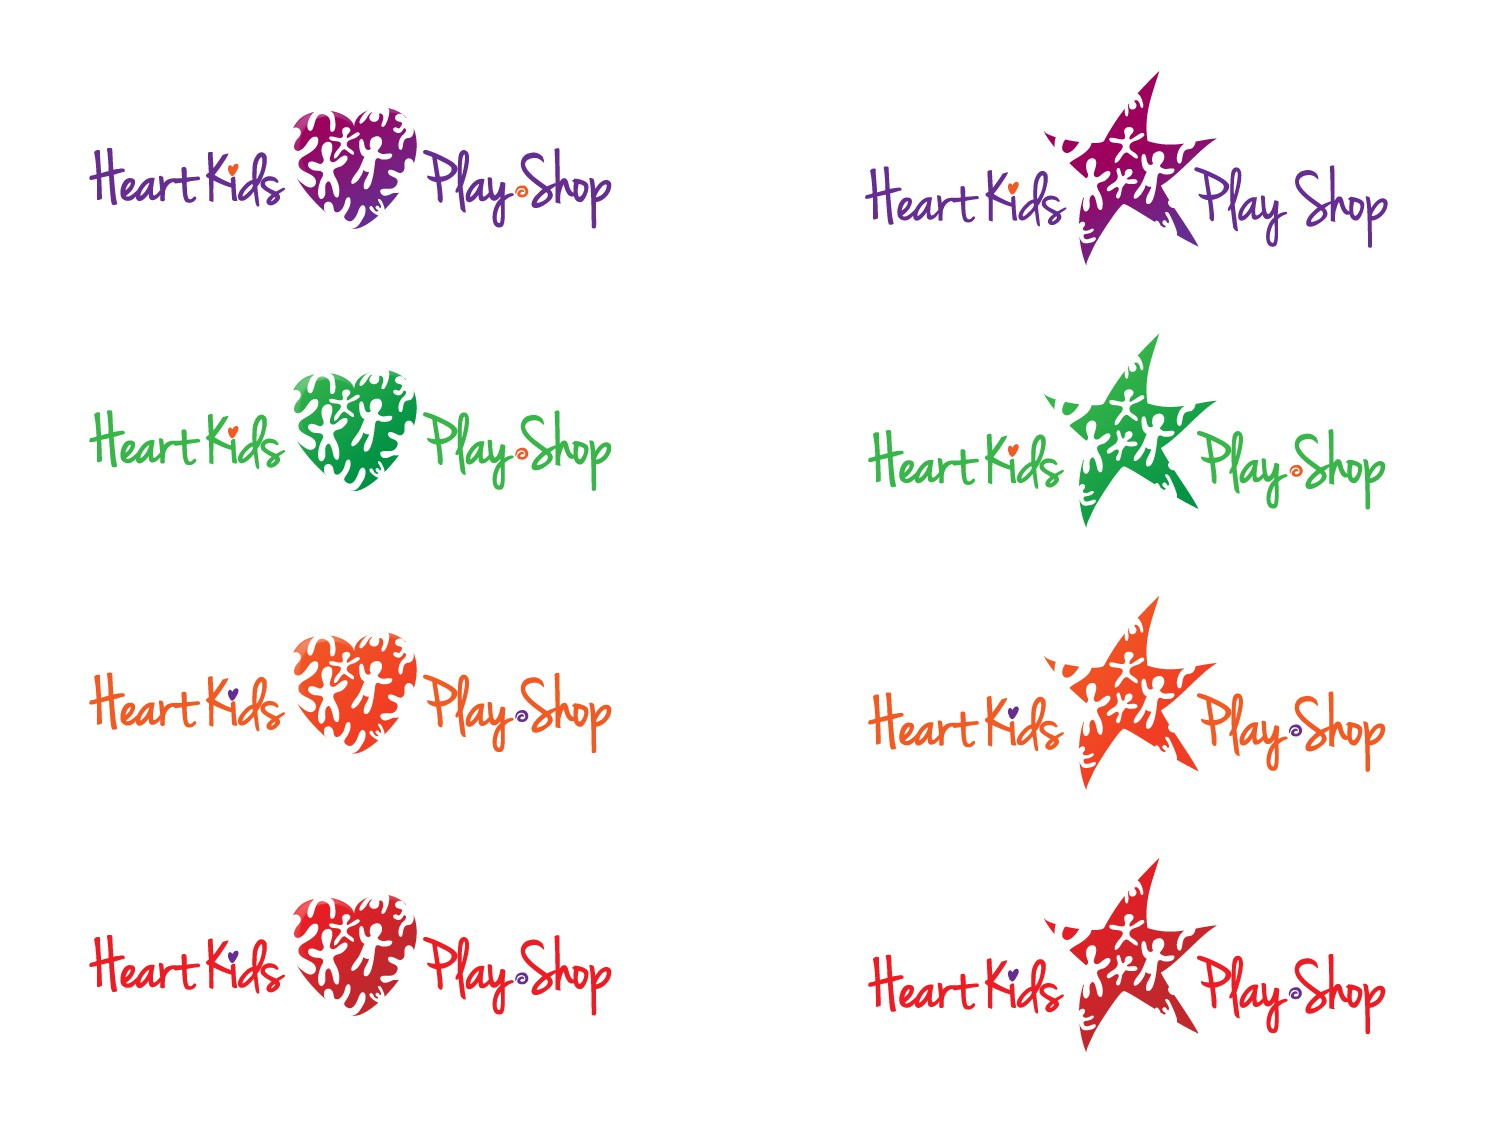 Help * Heart Kids Play Shop * with a new logo